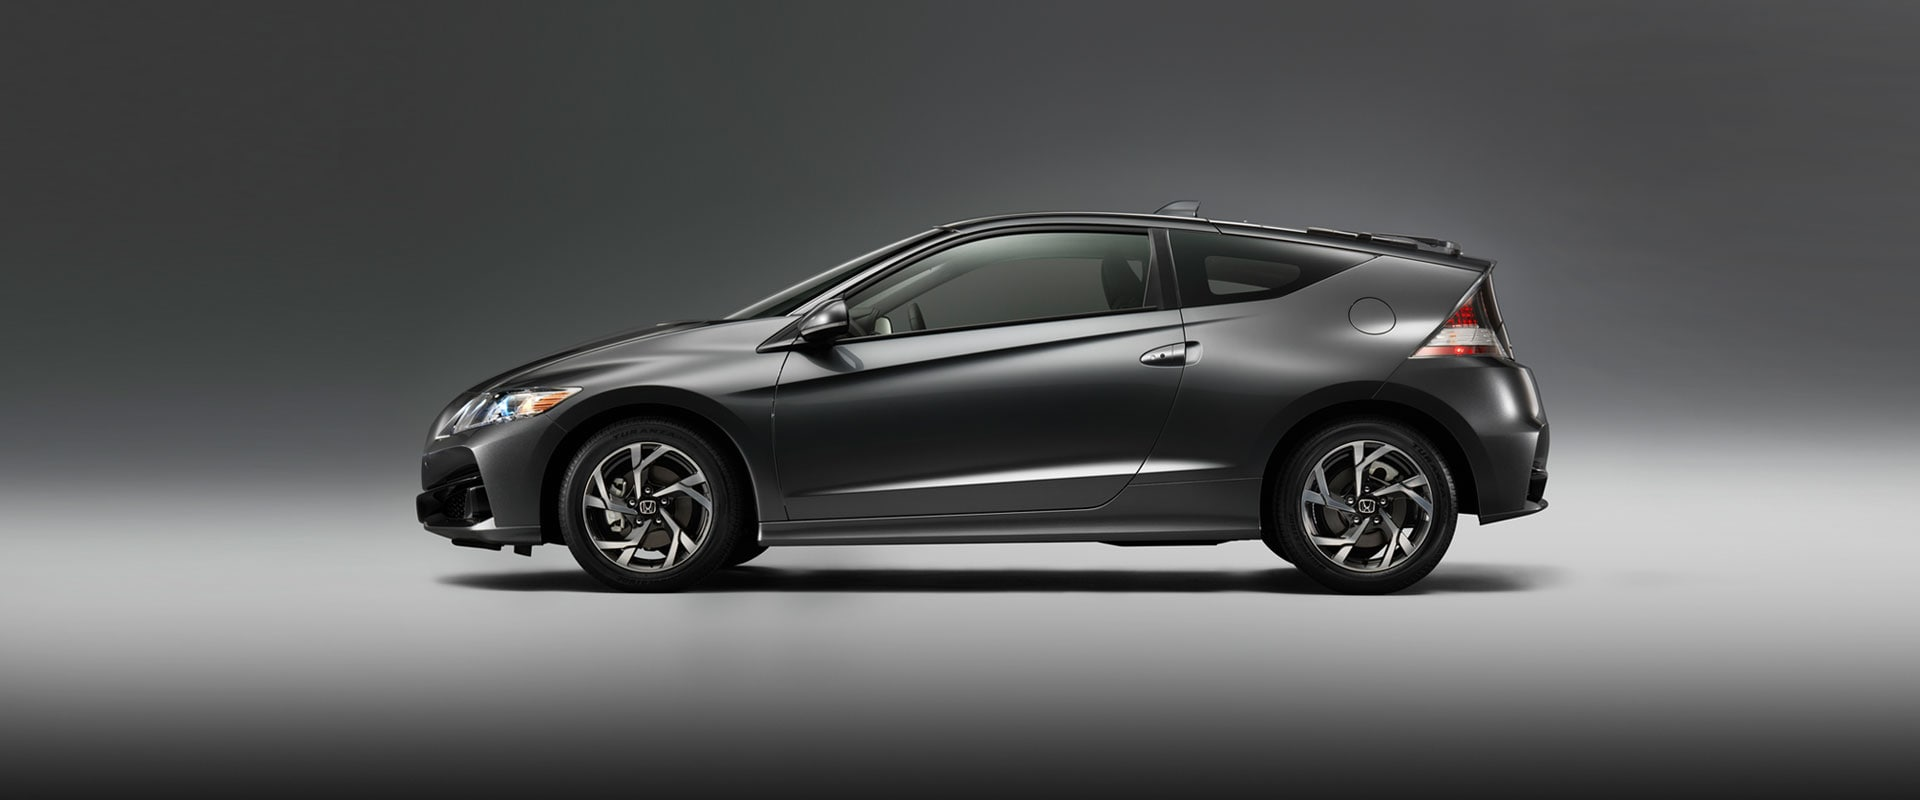 2016 honda cr z features official site. Black Bedroom Furniture Sets. Home Design Ideas